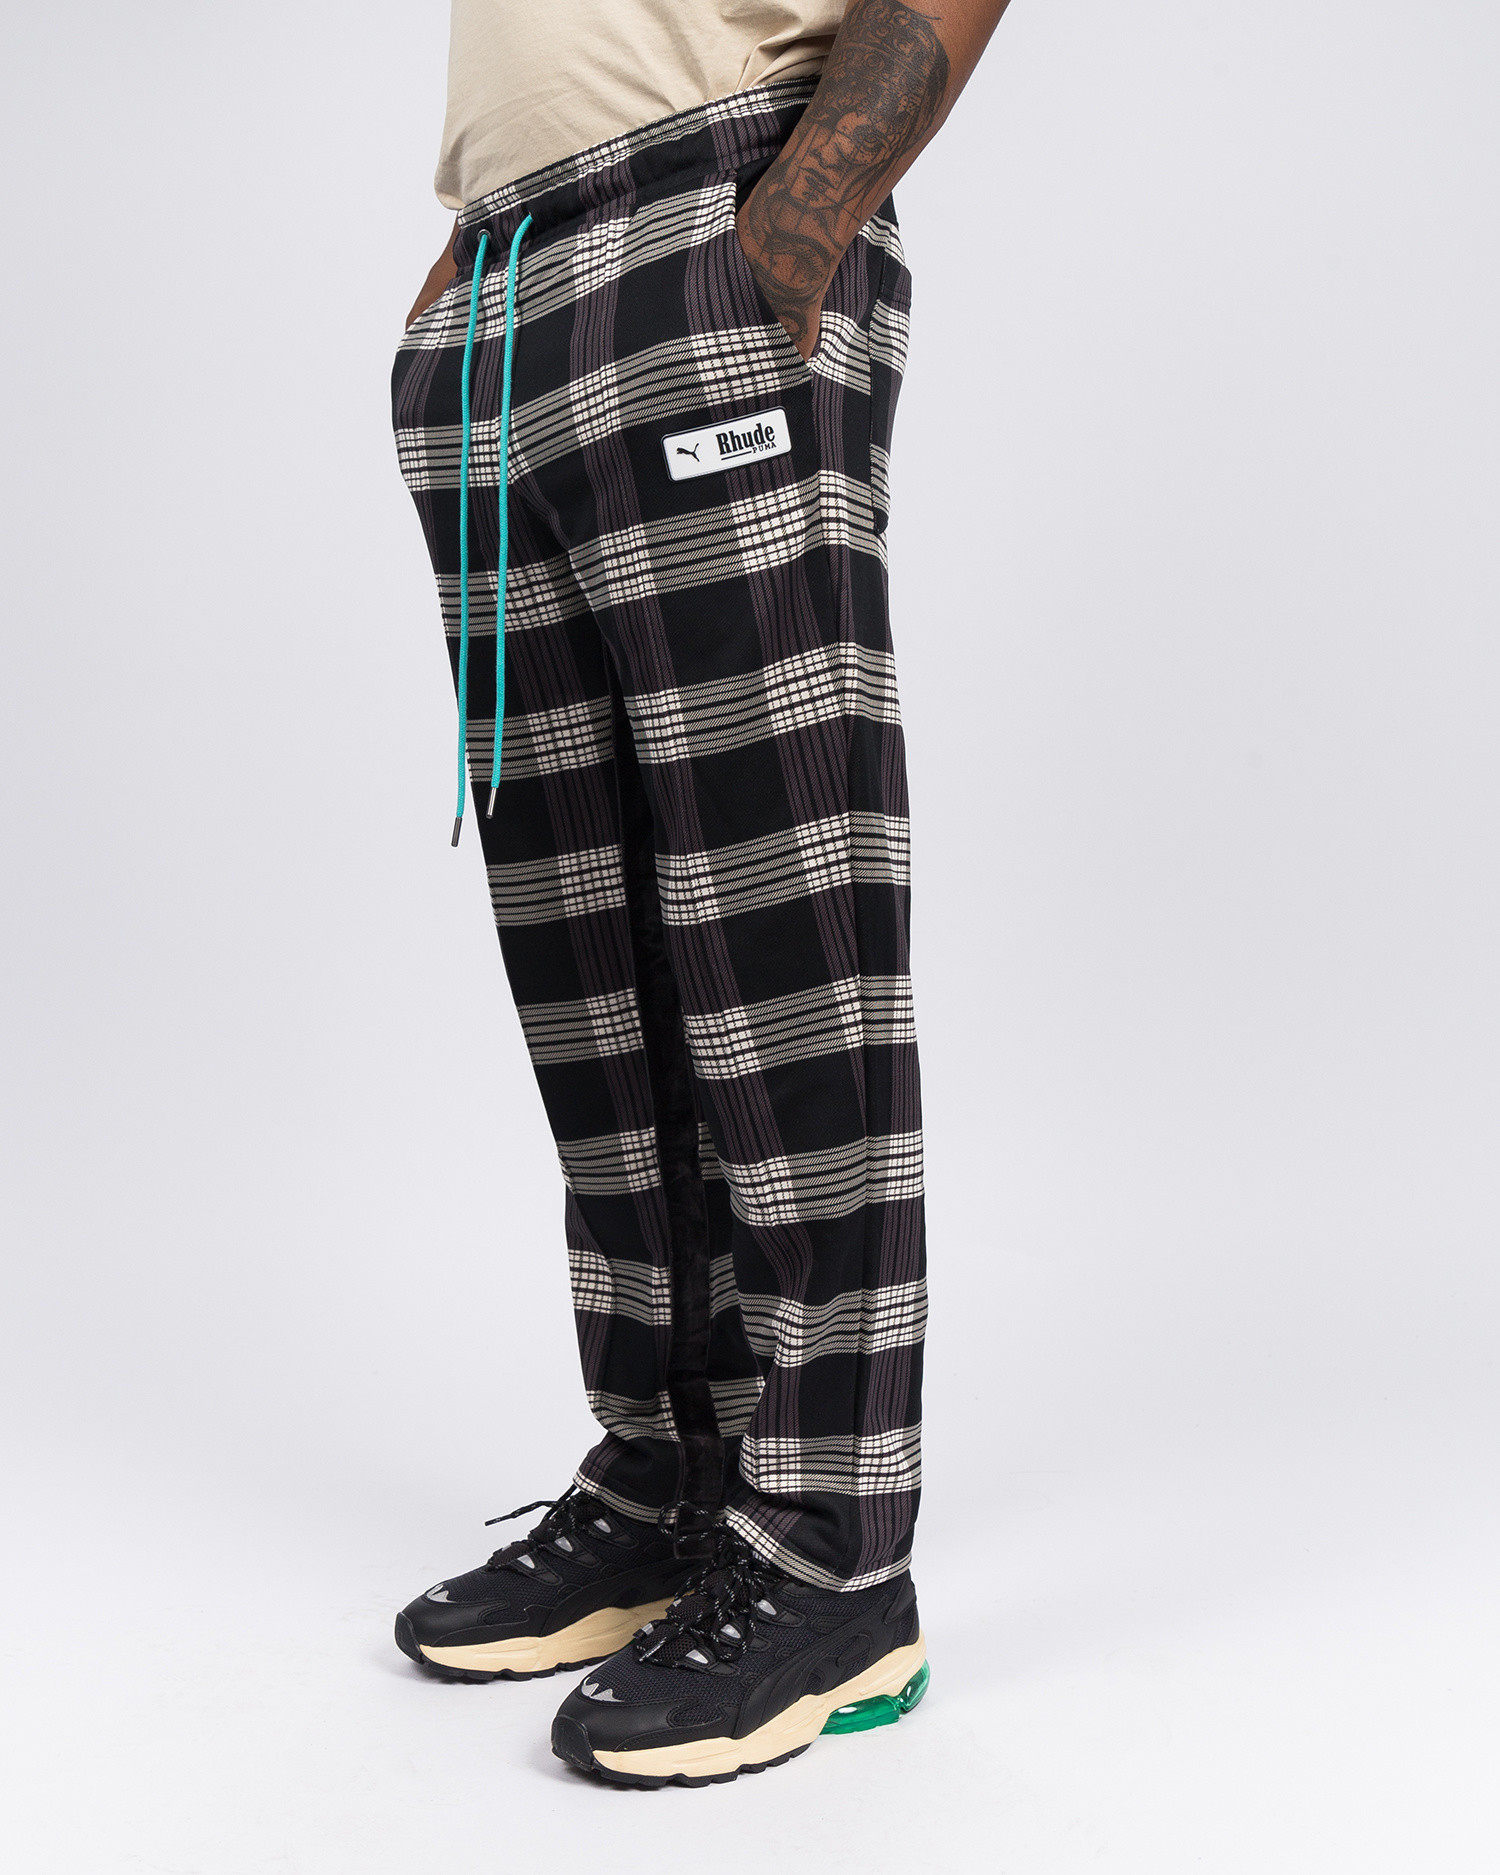 Puma x Rhude AOP trackpants Puma White